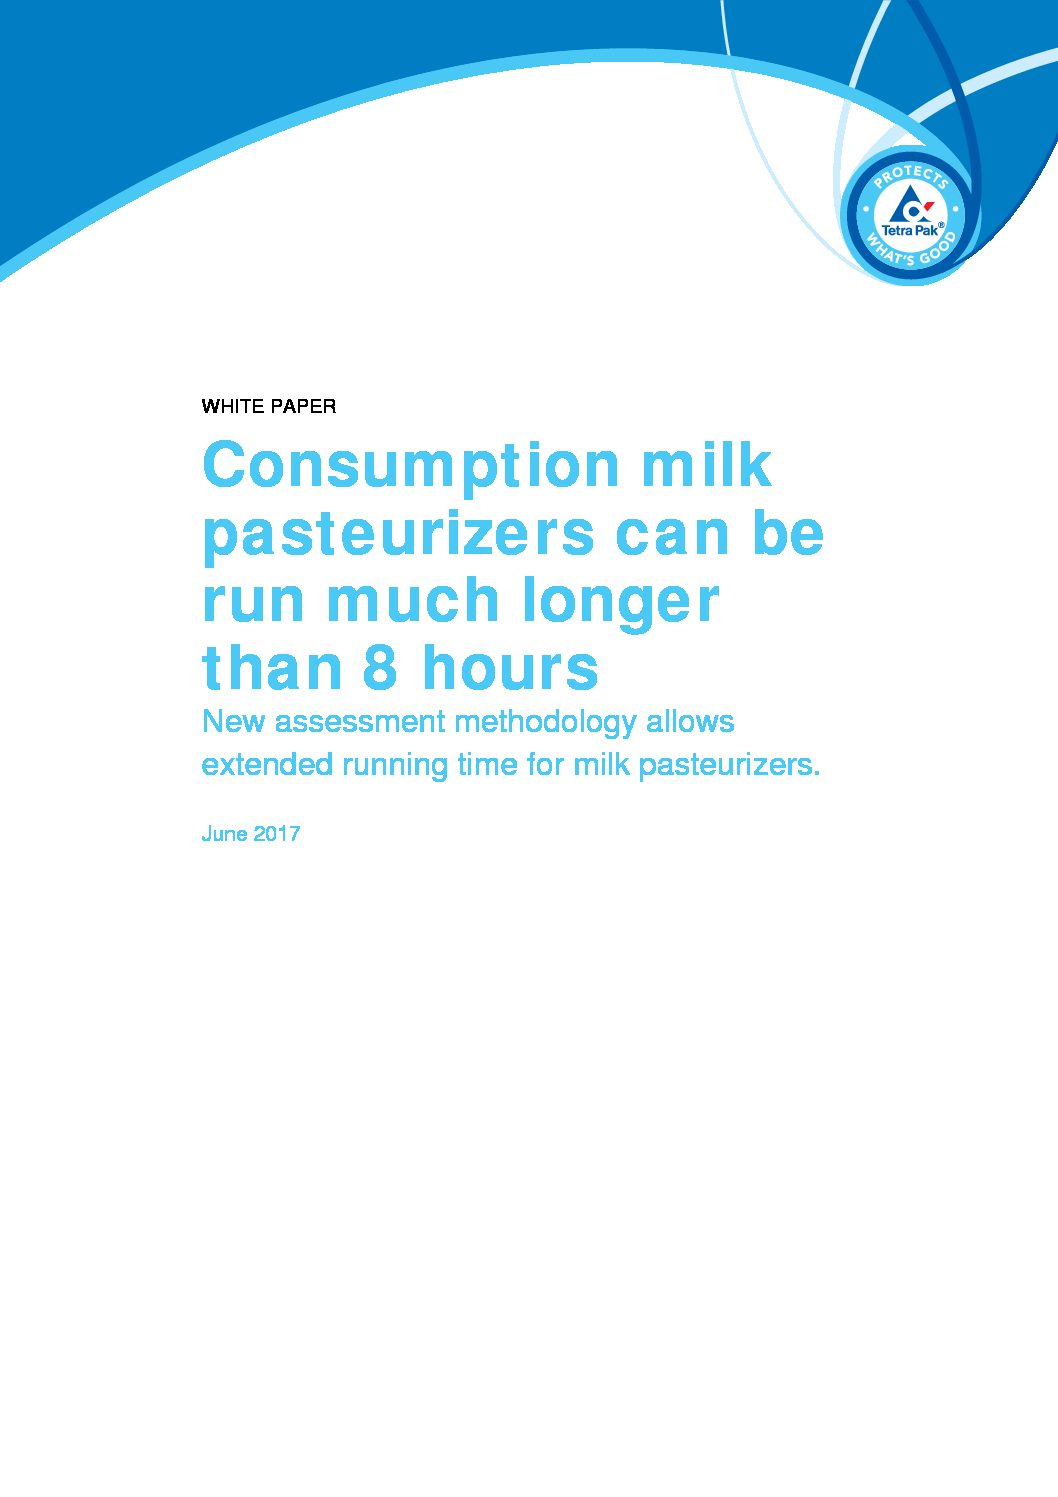 Consumption milk pasteurisers can be run much longer than 8 hours